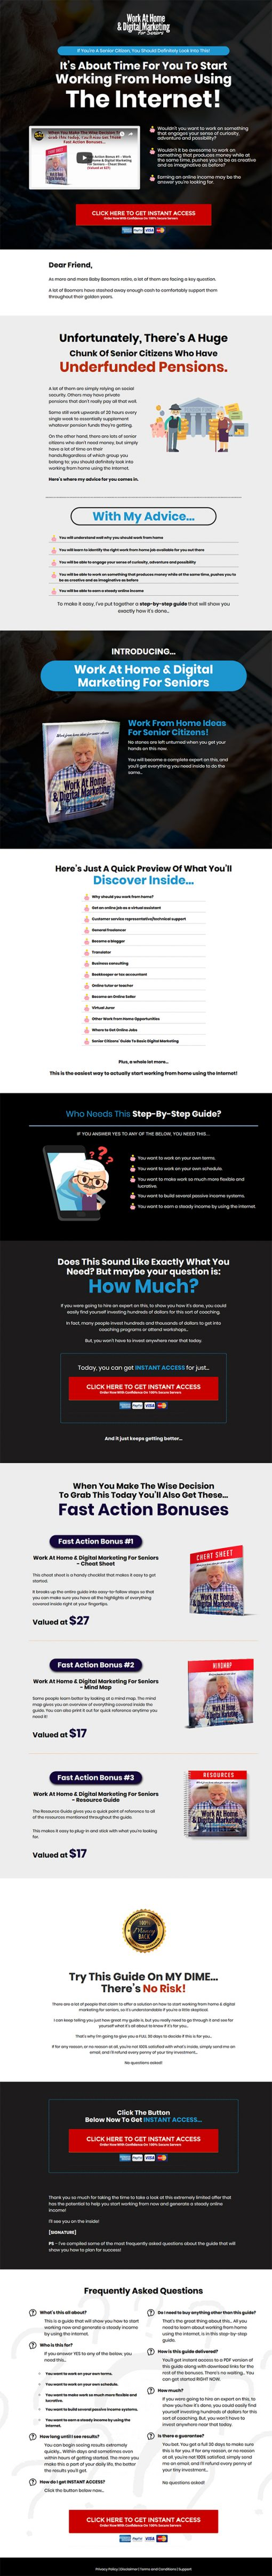 Work From Home Digital Marketing Ebook and Videos MRR